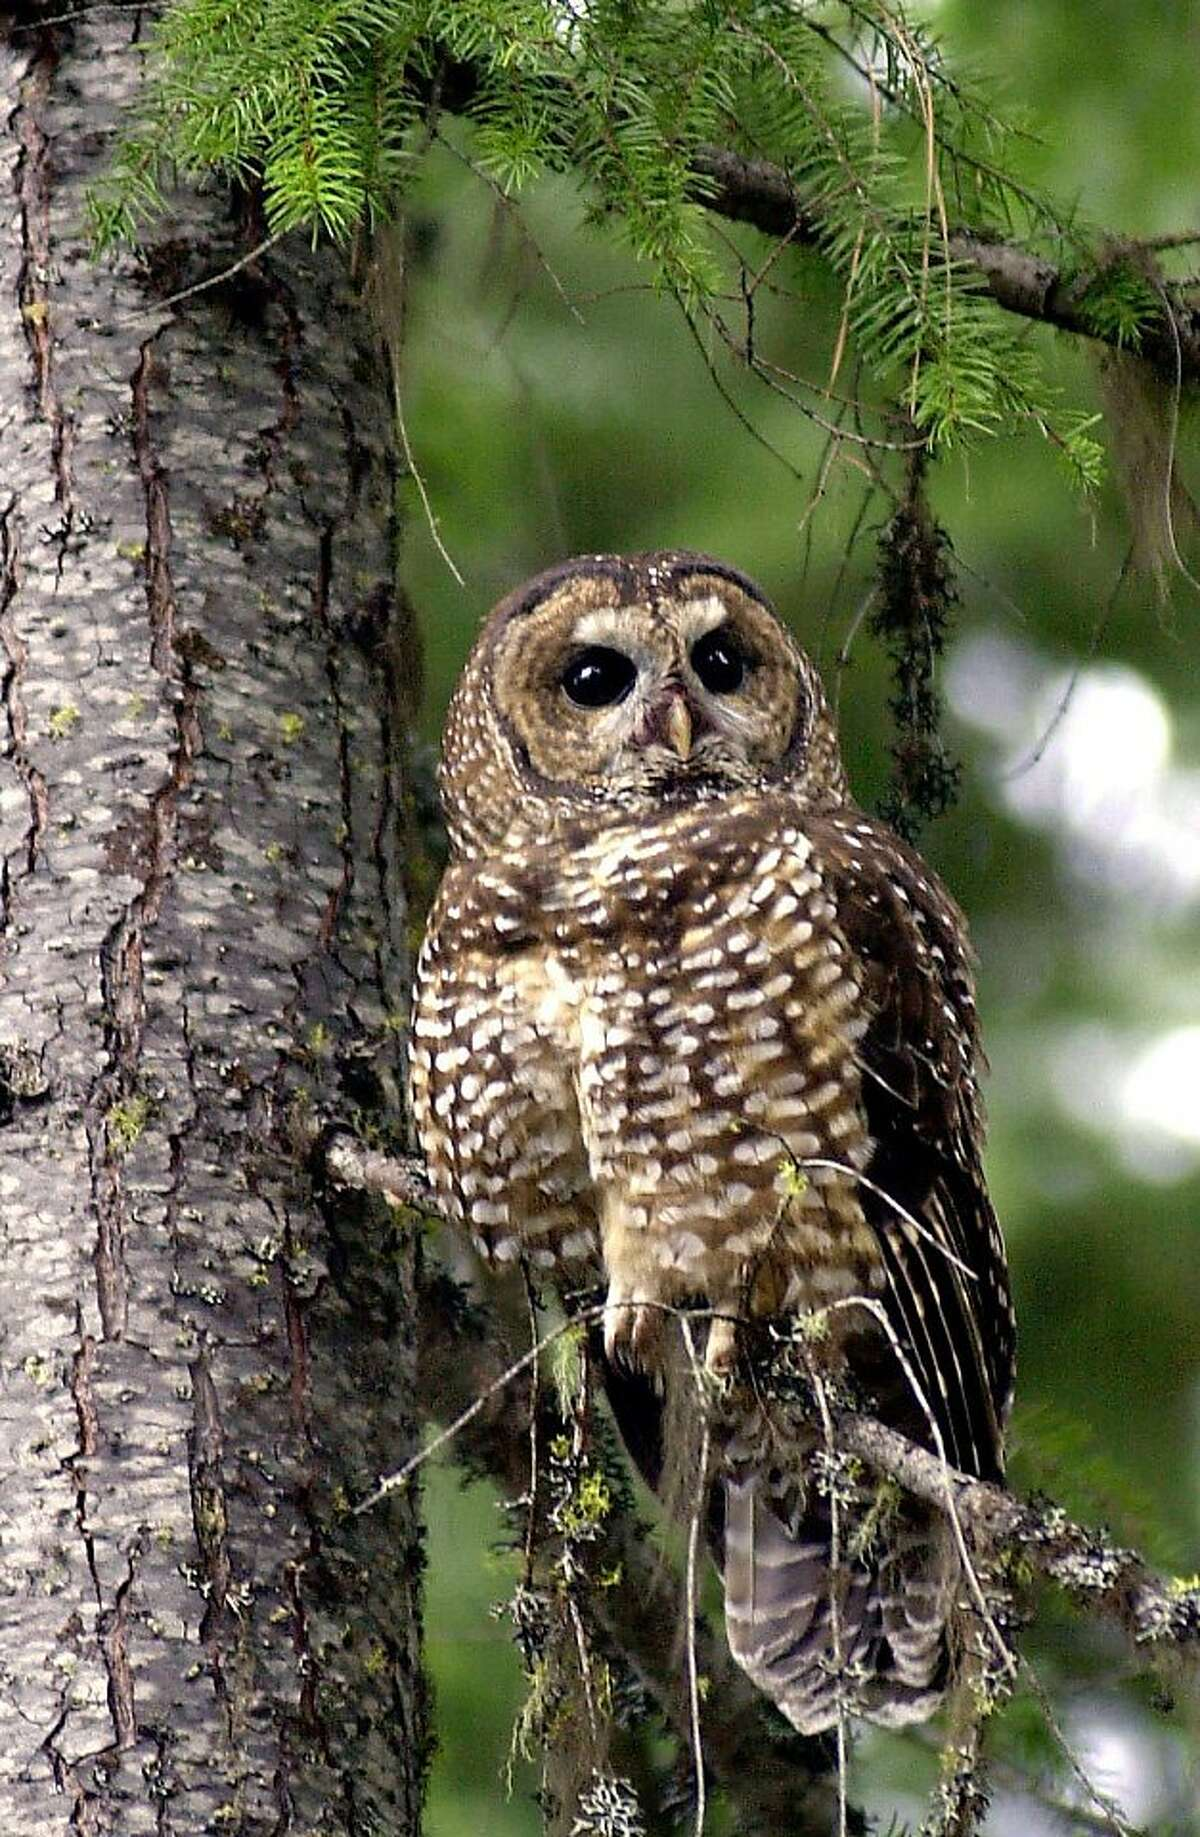 In this May 8, 2003 file photo, a northern spotted owl sits on a tree in the Deschutes National Forest near Camp Sherman, Ore. To save the endangered spotted owl, the Obama administration is moving forward with a plan to shoot barred owls, a rival bird that has shoved its smaller cousin aside. The plan is the latest government attempt to protect the northern spotted owl, the meek, one-pound bird that sparked an epic battle over logging in the Pacific Northwest two decades ago.